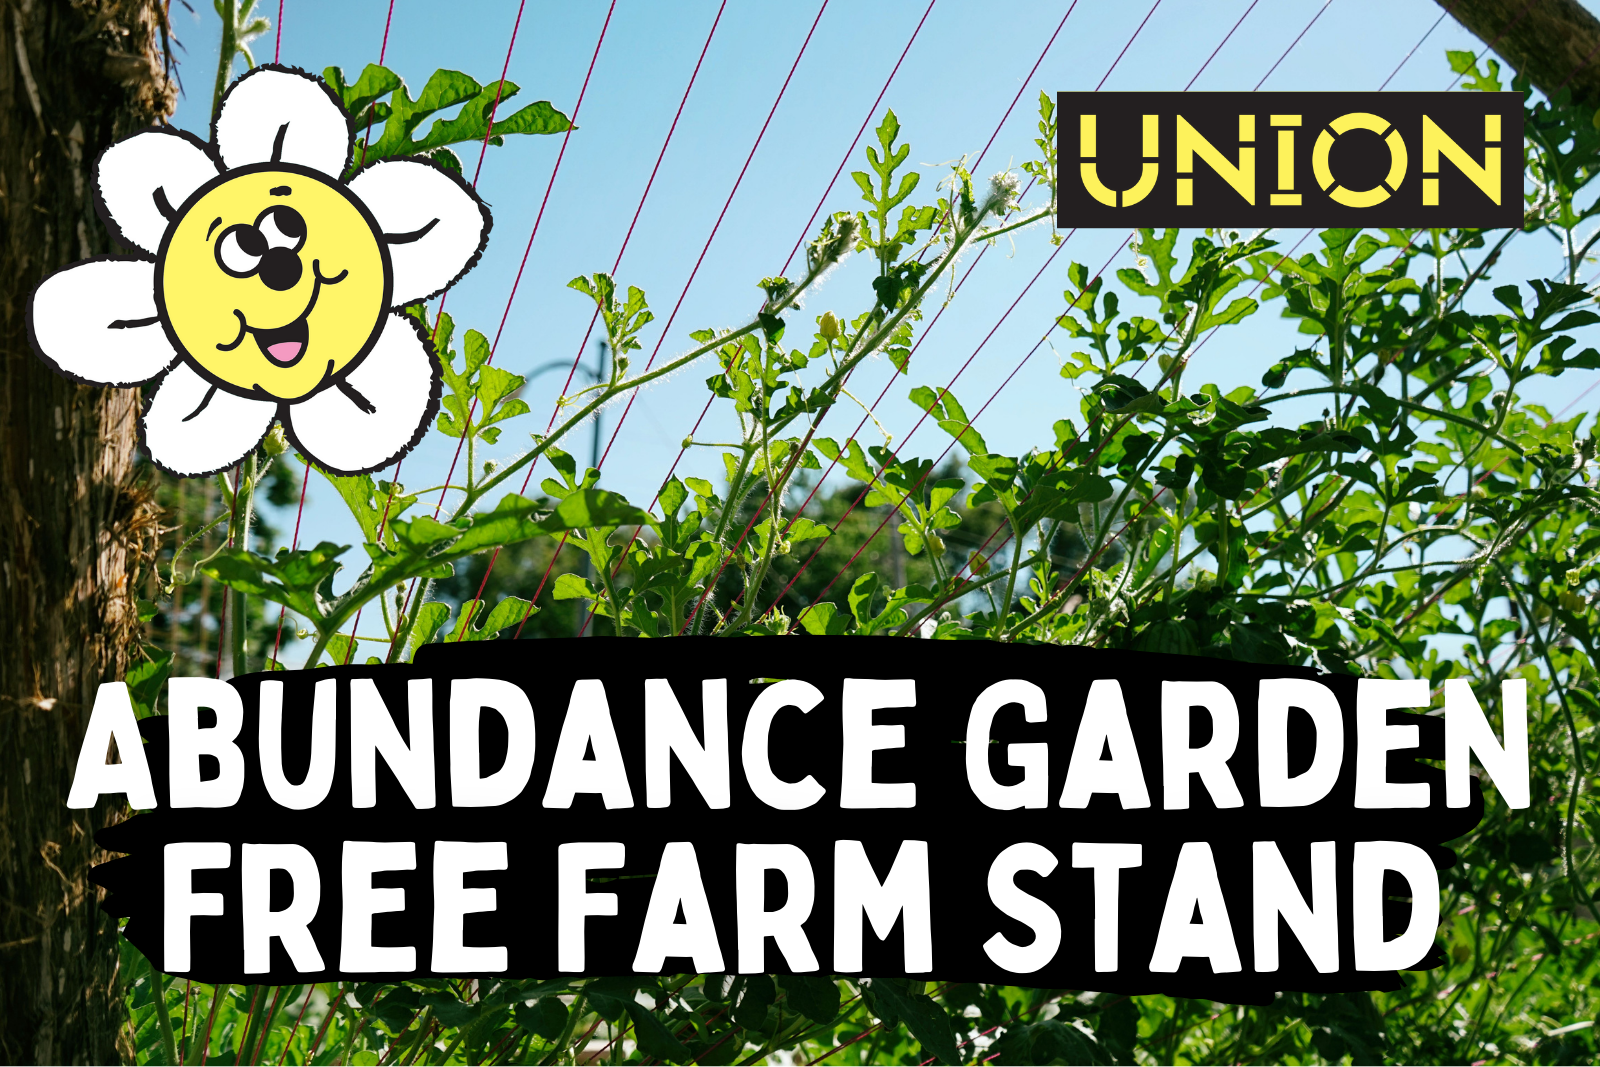 Abundance Garden Free Farm Stand text against a photo of a vine clibing a trellice A smiling cartoon flower is in the top right corner